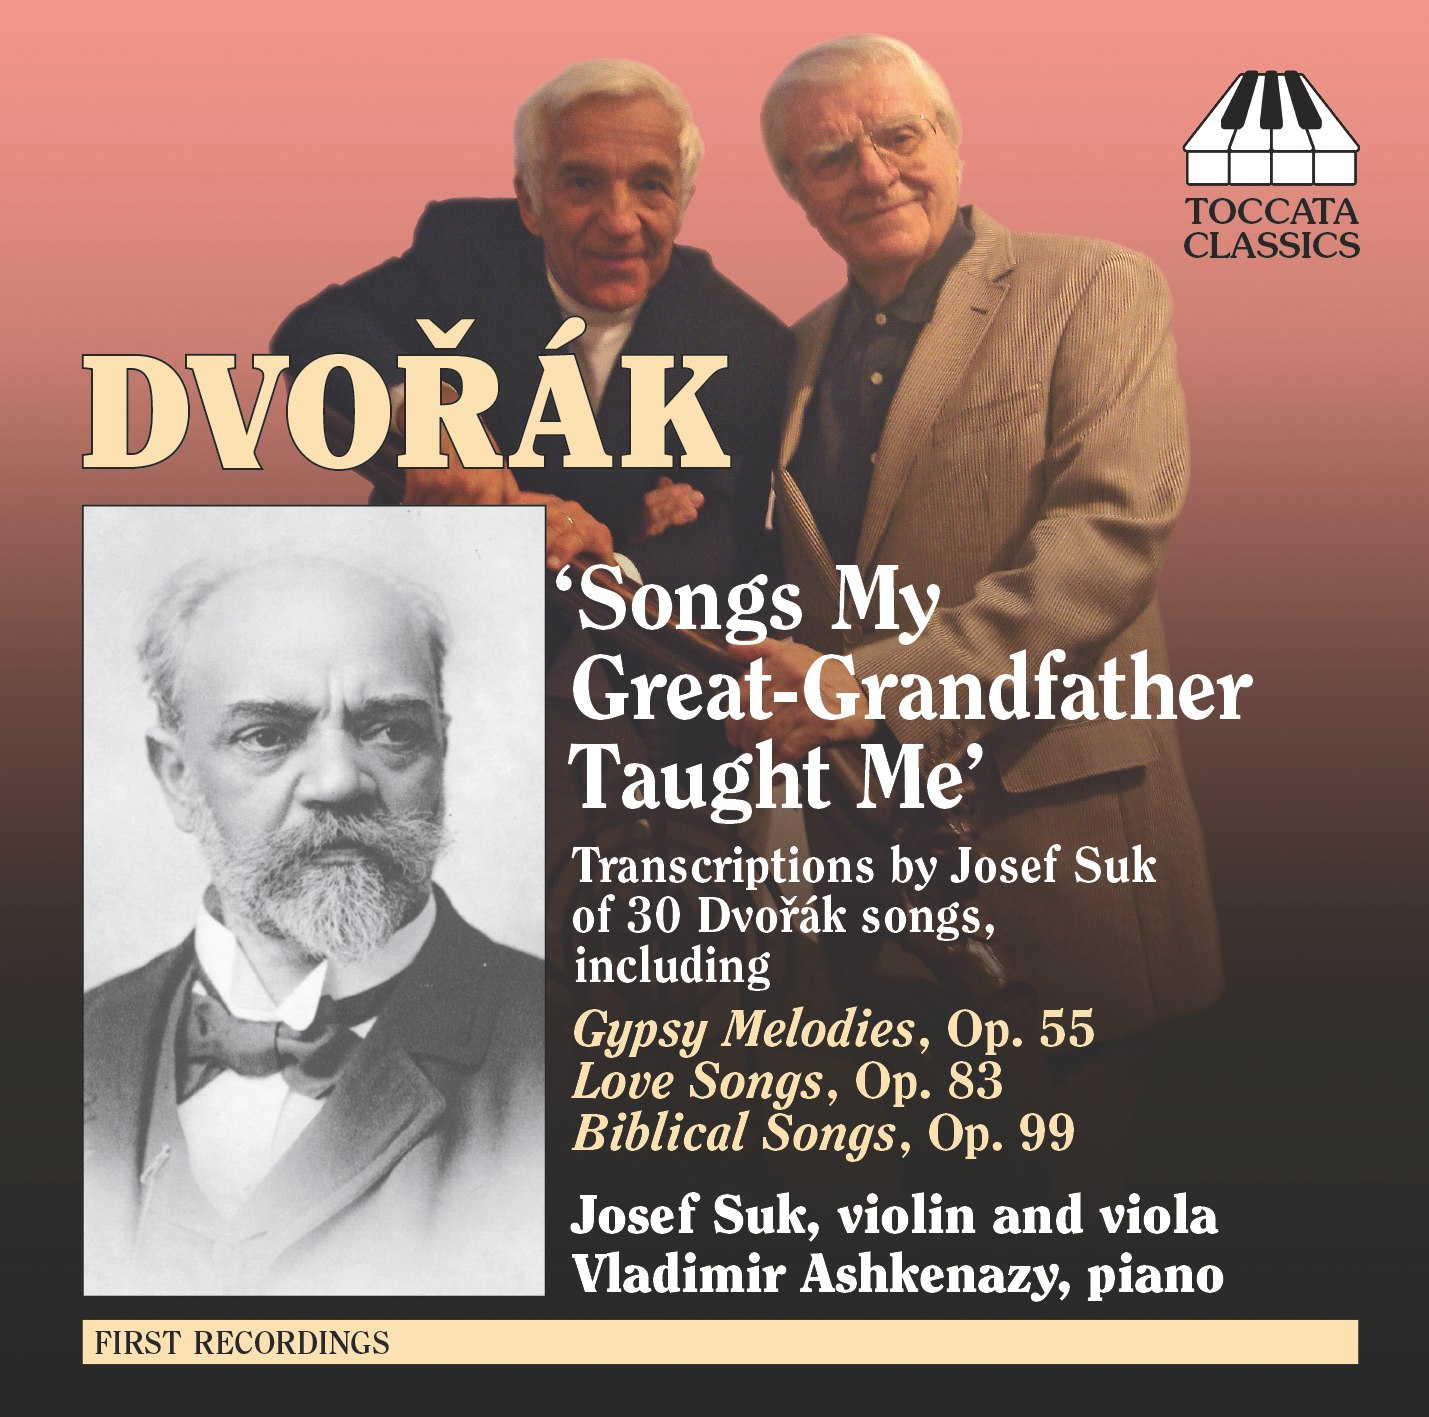 Dvořák: 'Songs My Great-Grandfather Taught Me'